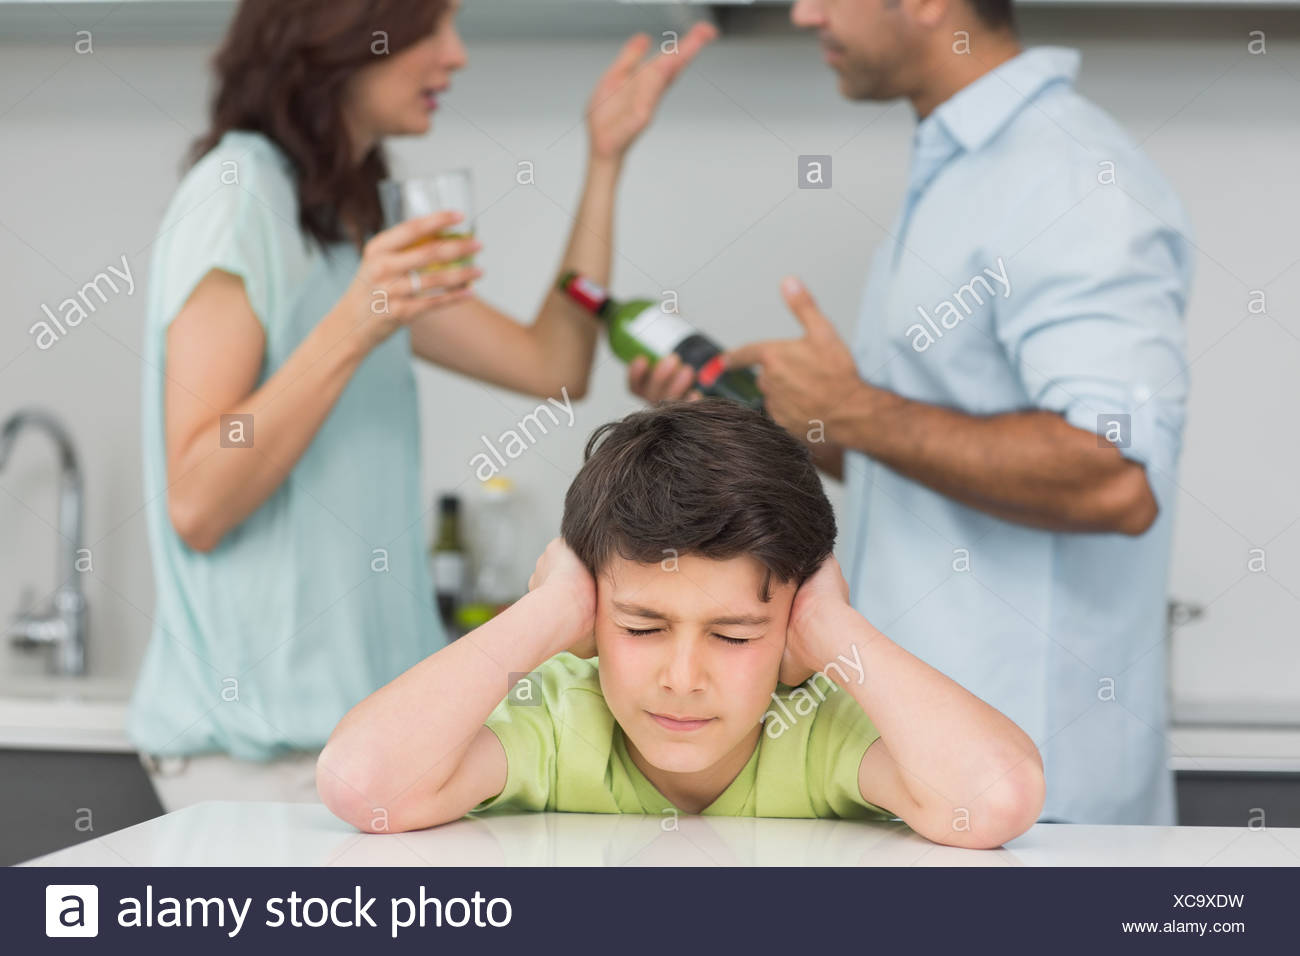 Sad young boy covering ears while parents quarreling - Stock Image